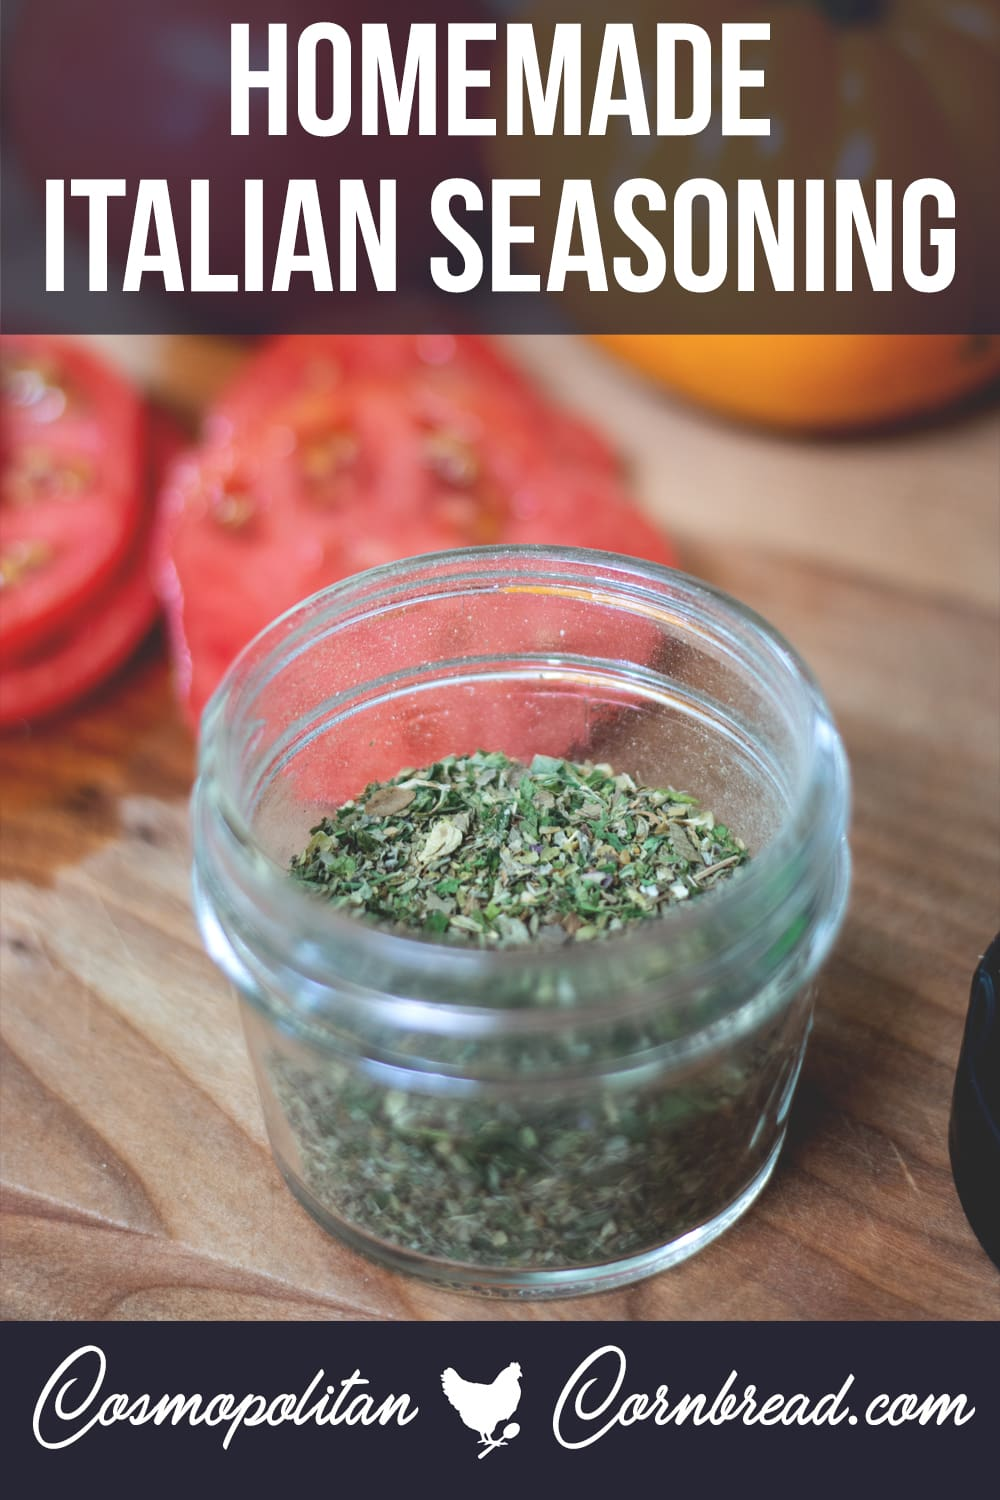 How to Male Homemade Italian Seasoning